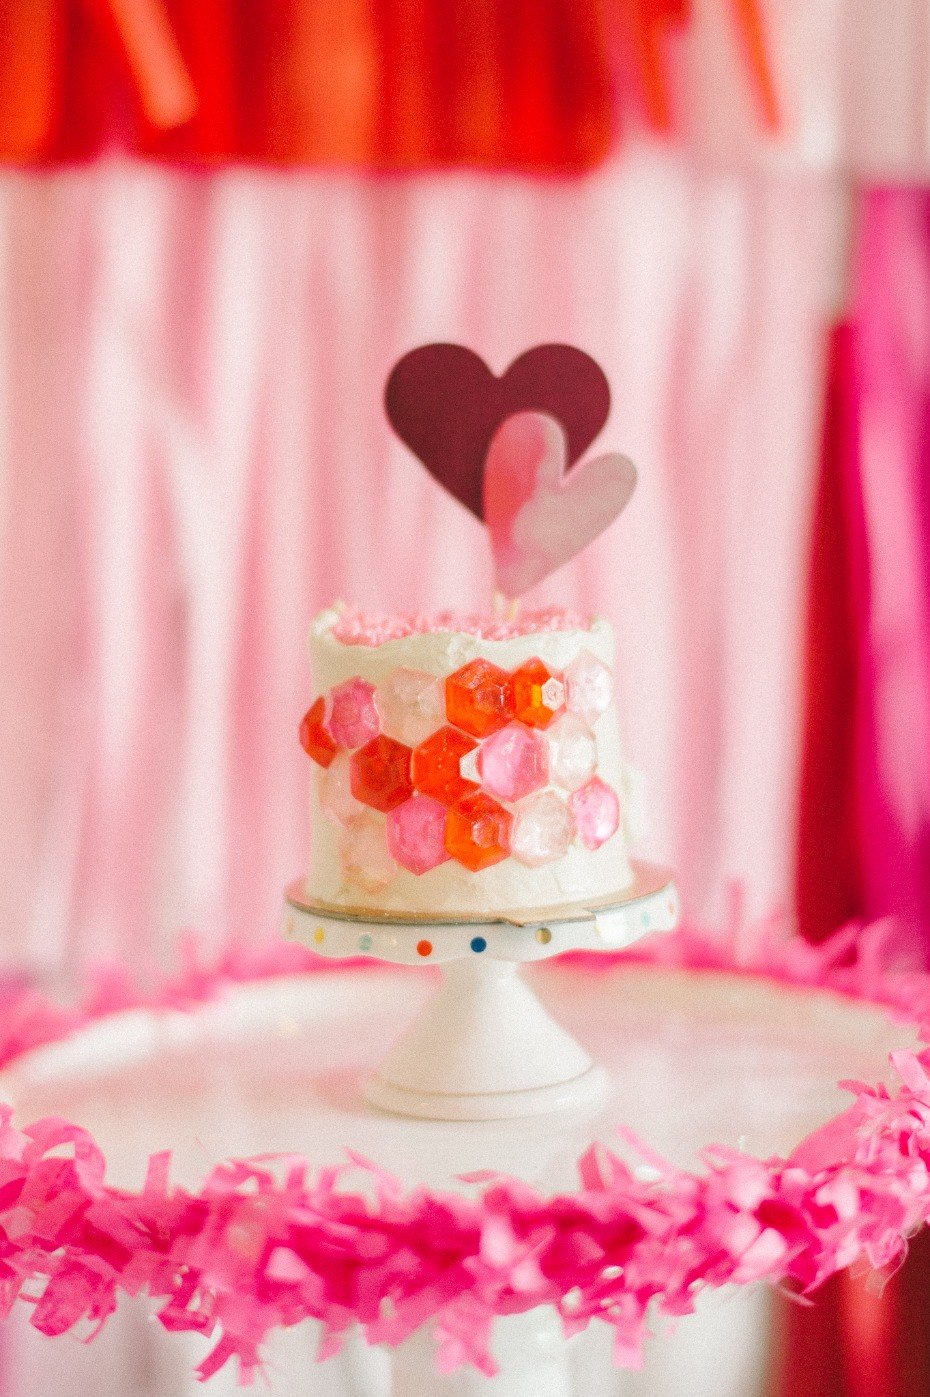 cake decorating bridal shower idea